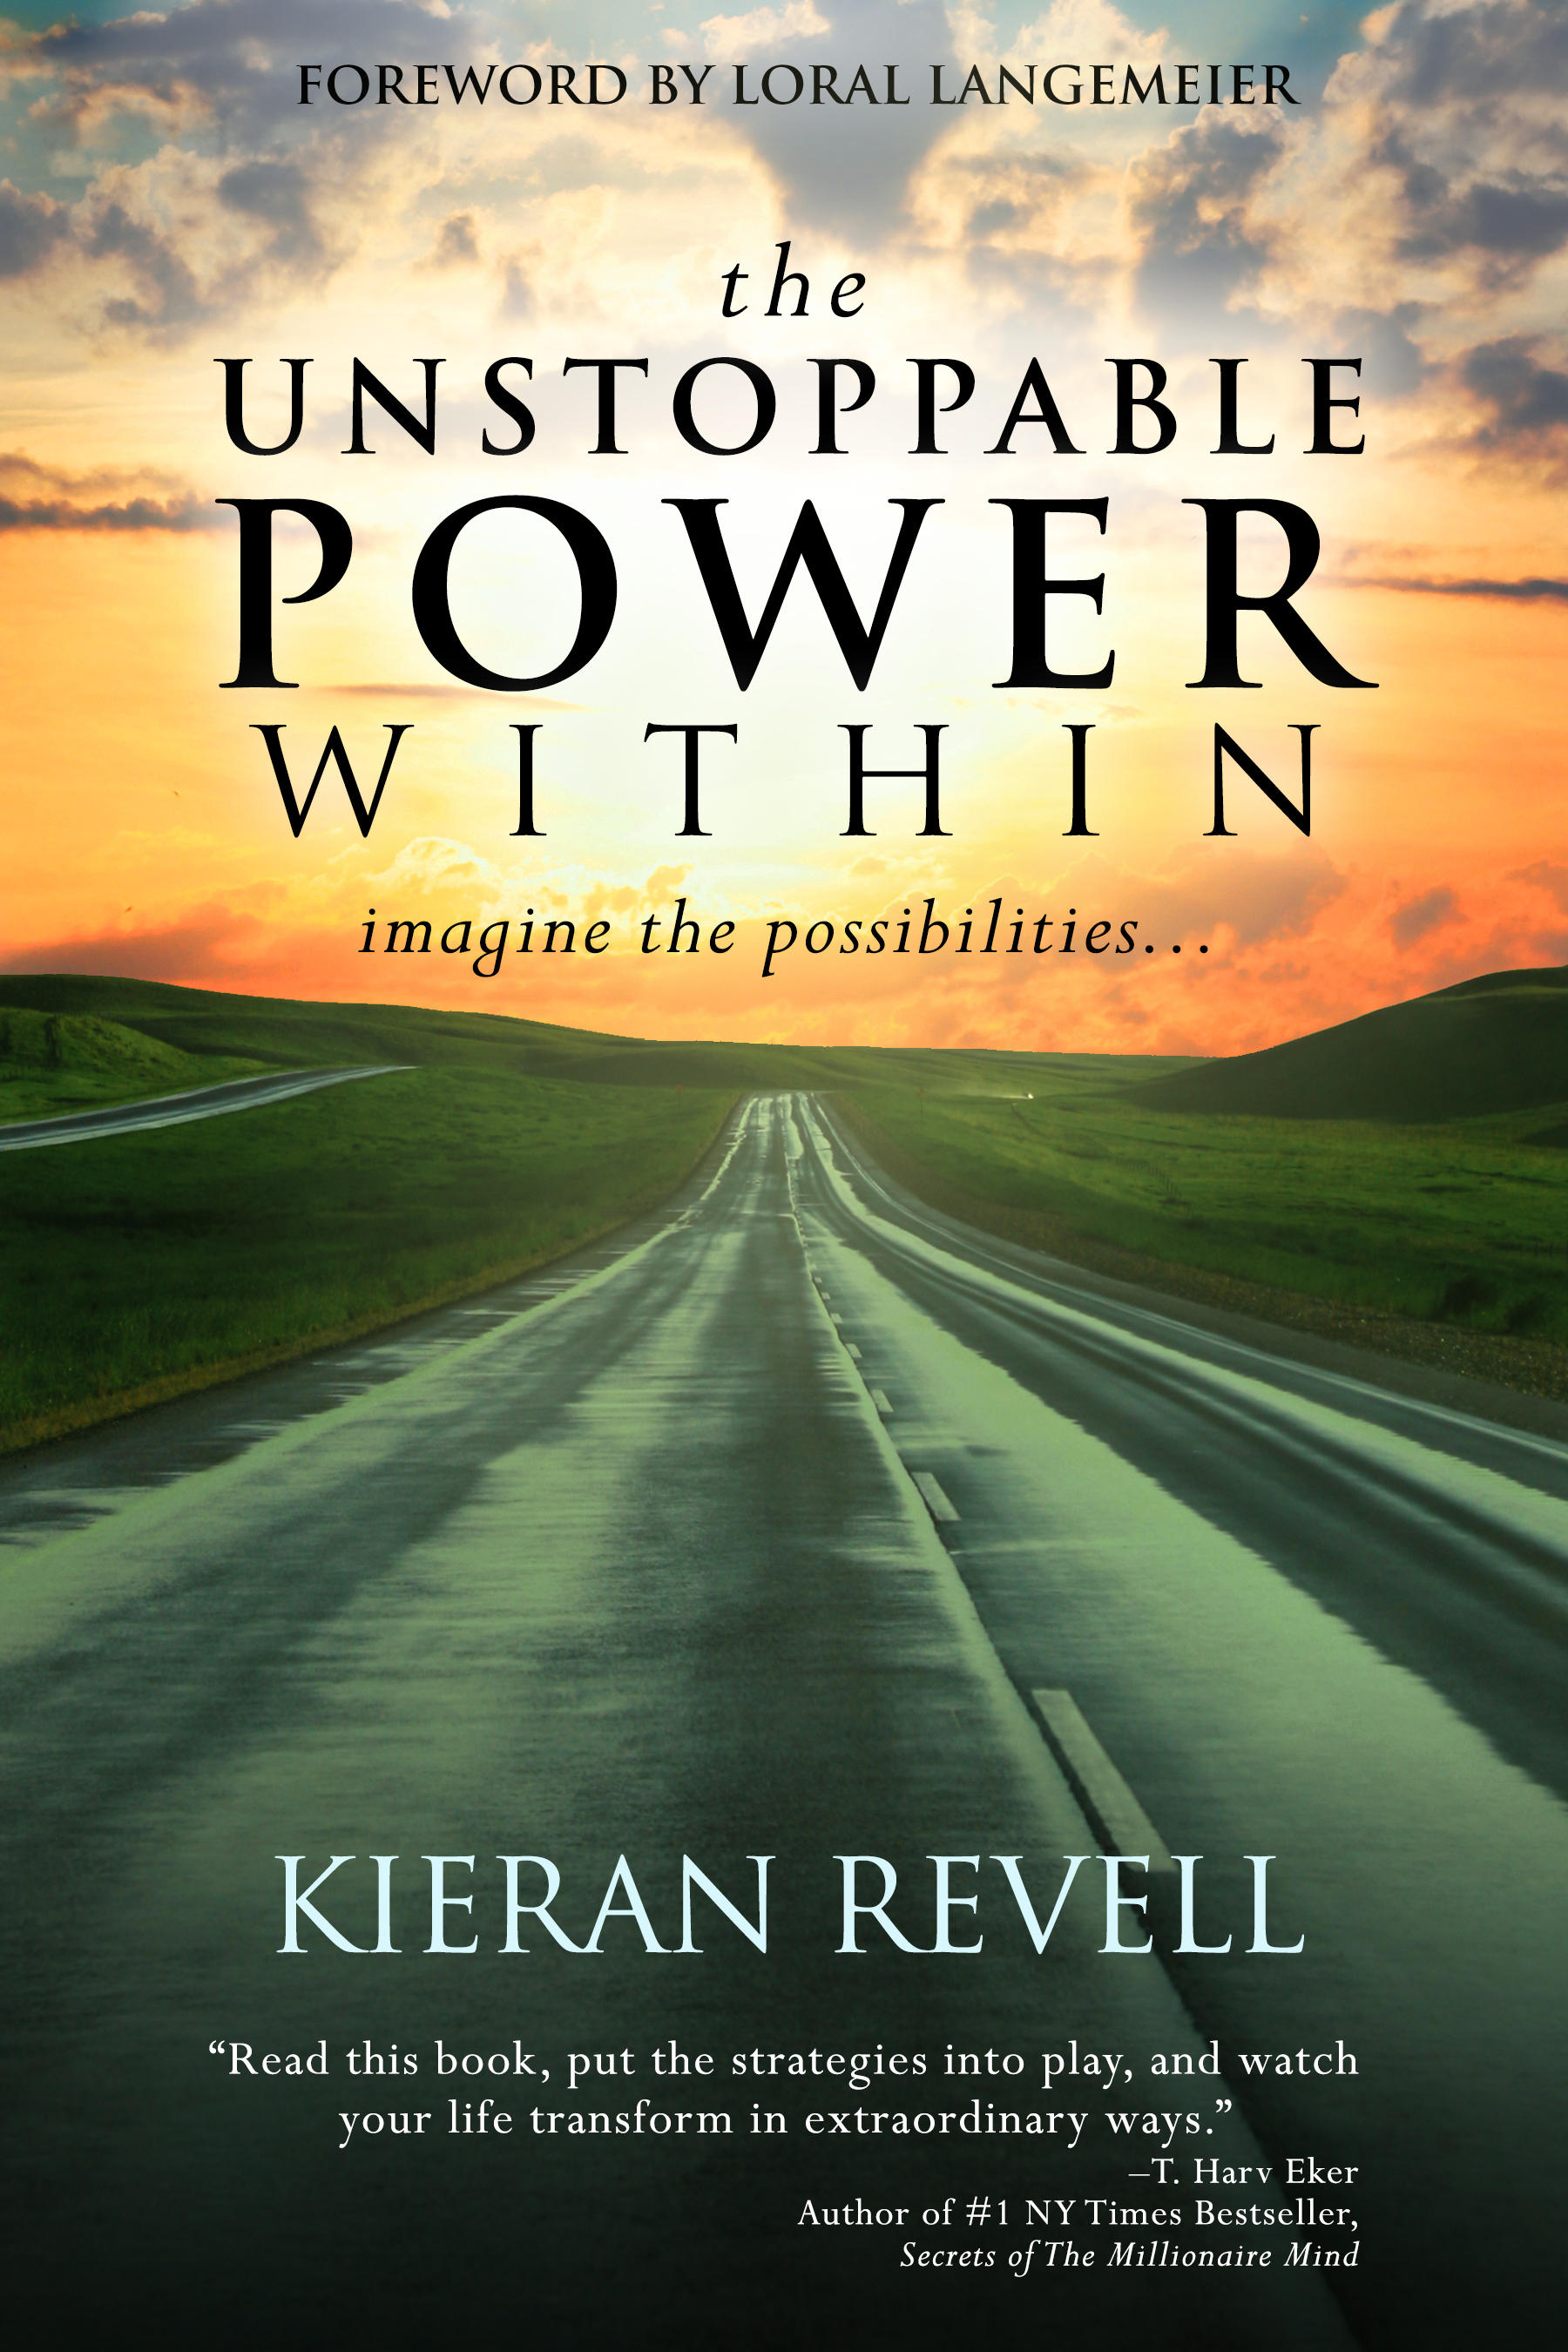 The Unstoppable Power Within - Kieran Revell